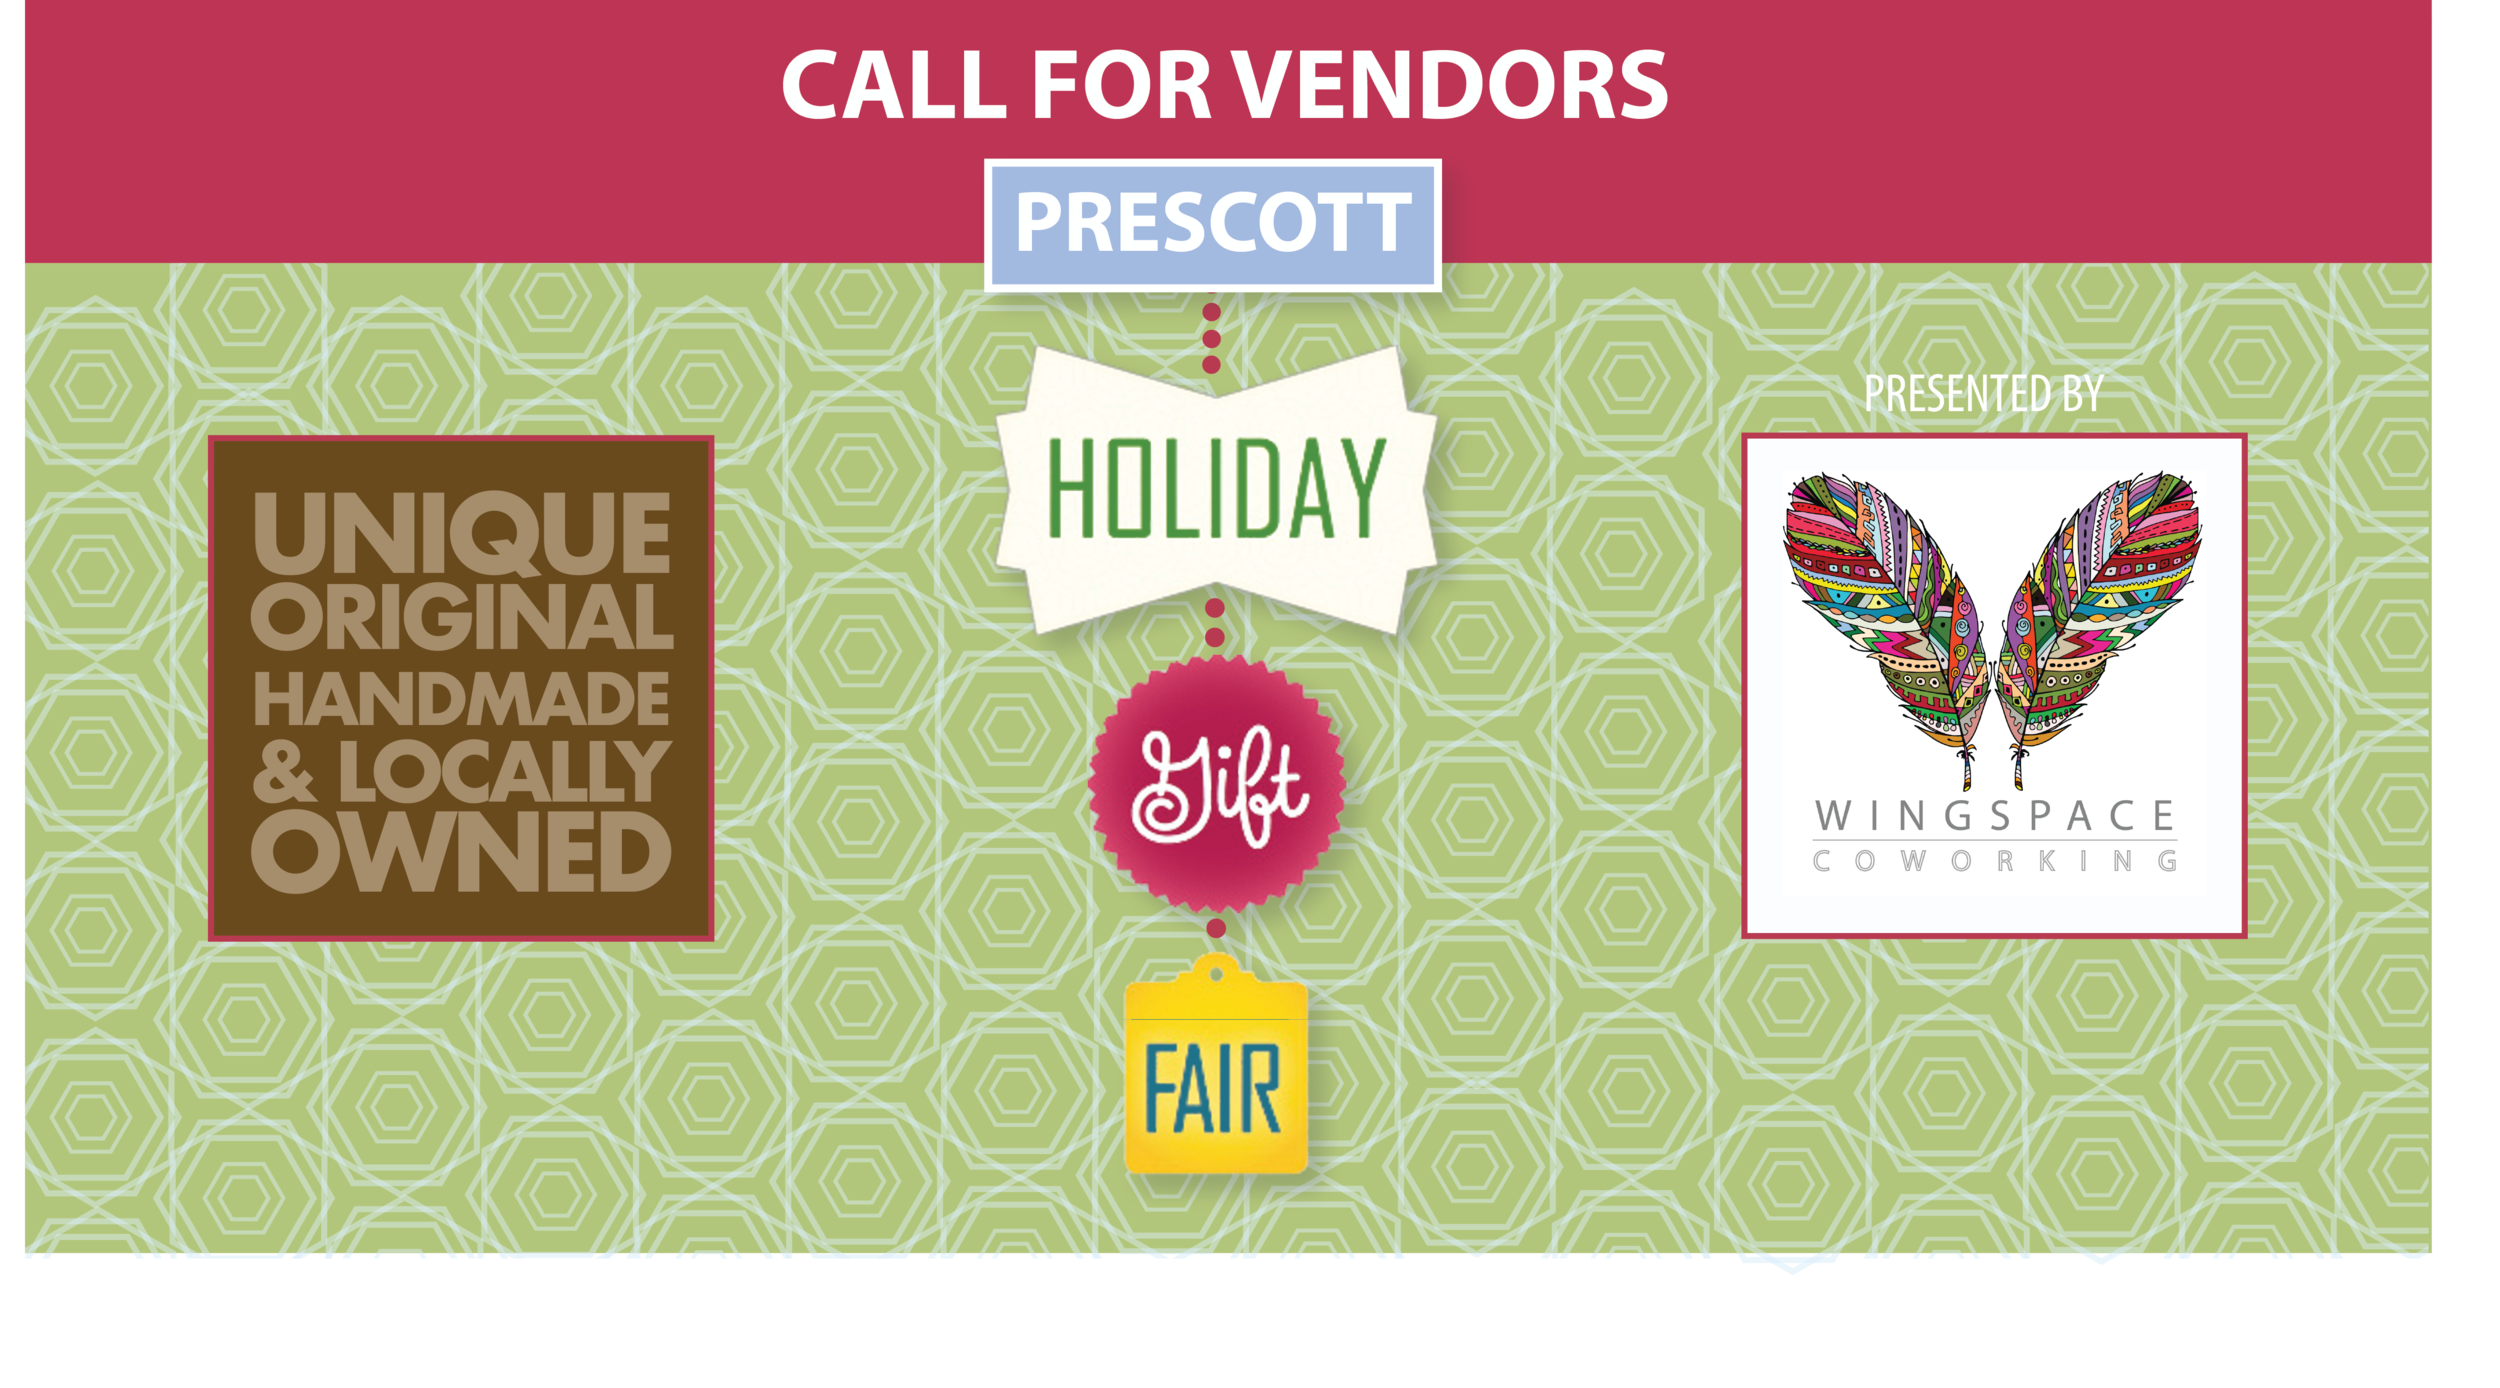 HOLIDAY GIFT FAIR FB EVENT CALL FOR VENDORS BANNER.png